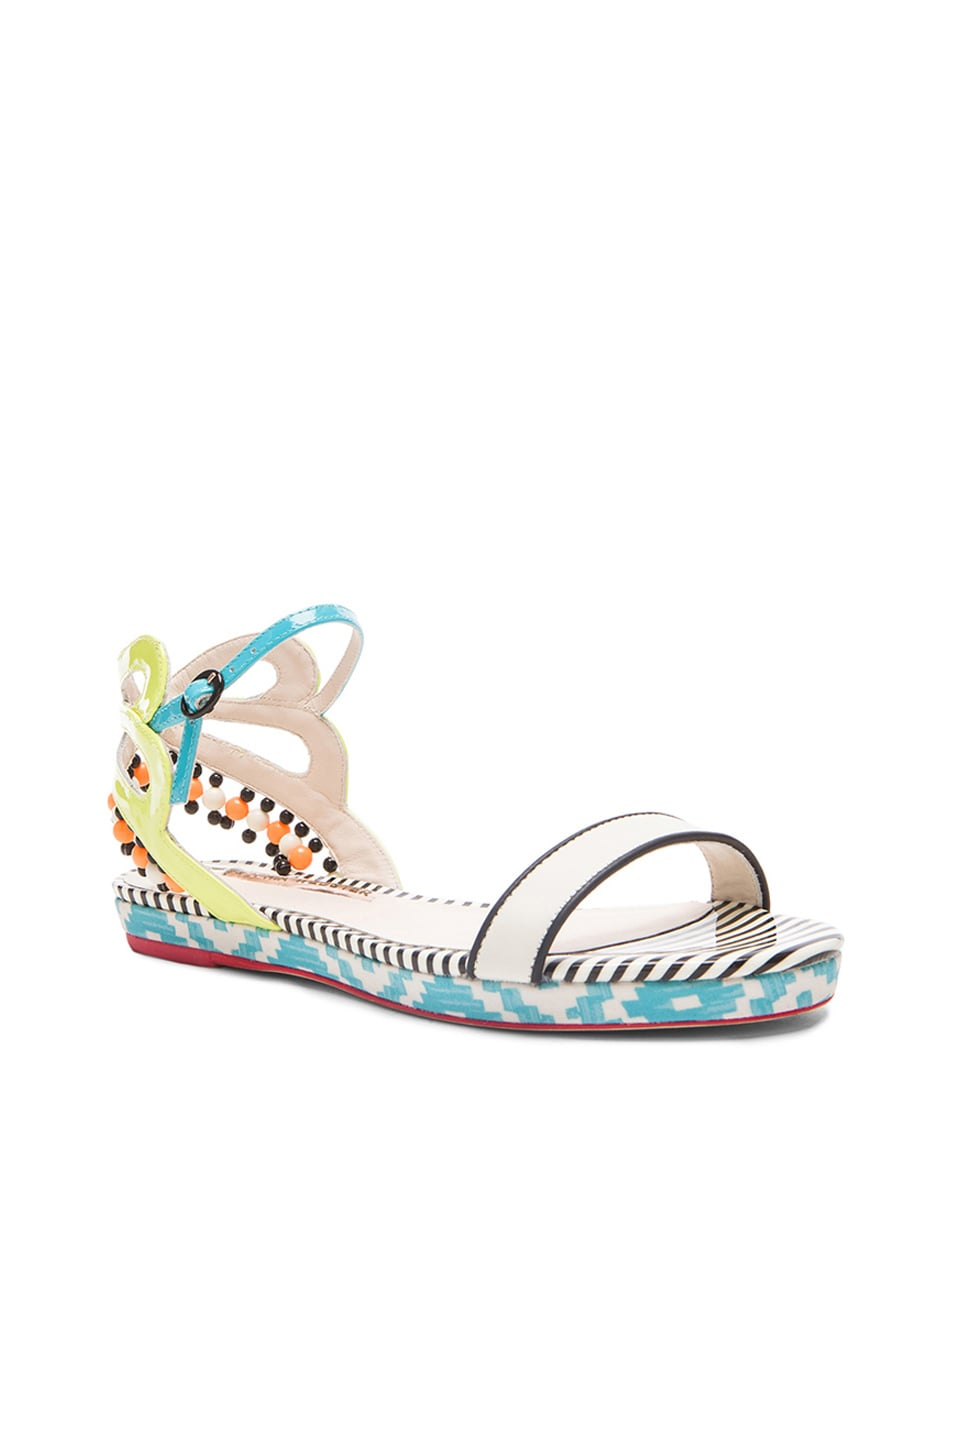 Image 2 of Sophia Webster Luca Aztec Patent Leather Sandals in Blue & White